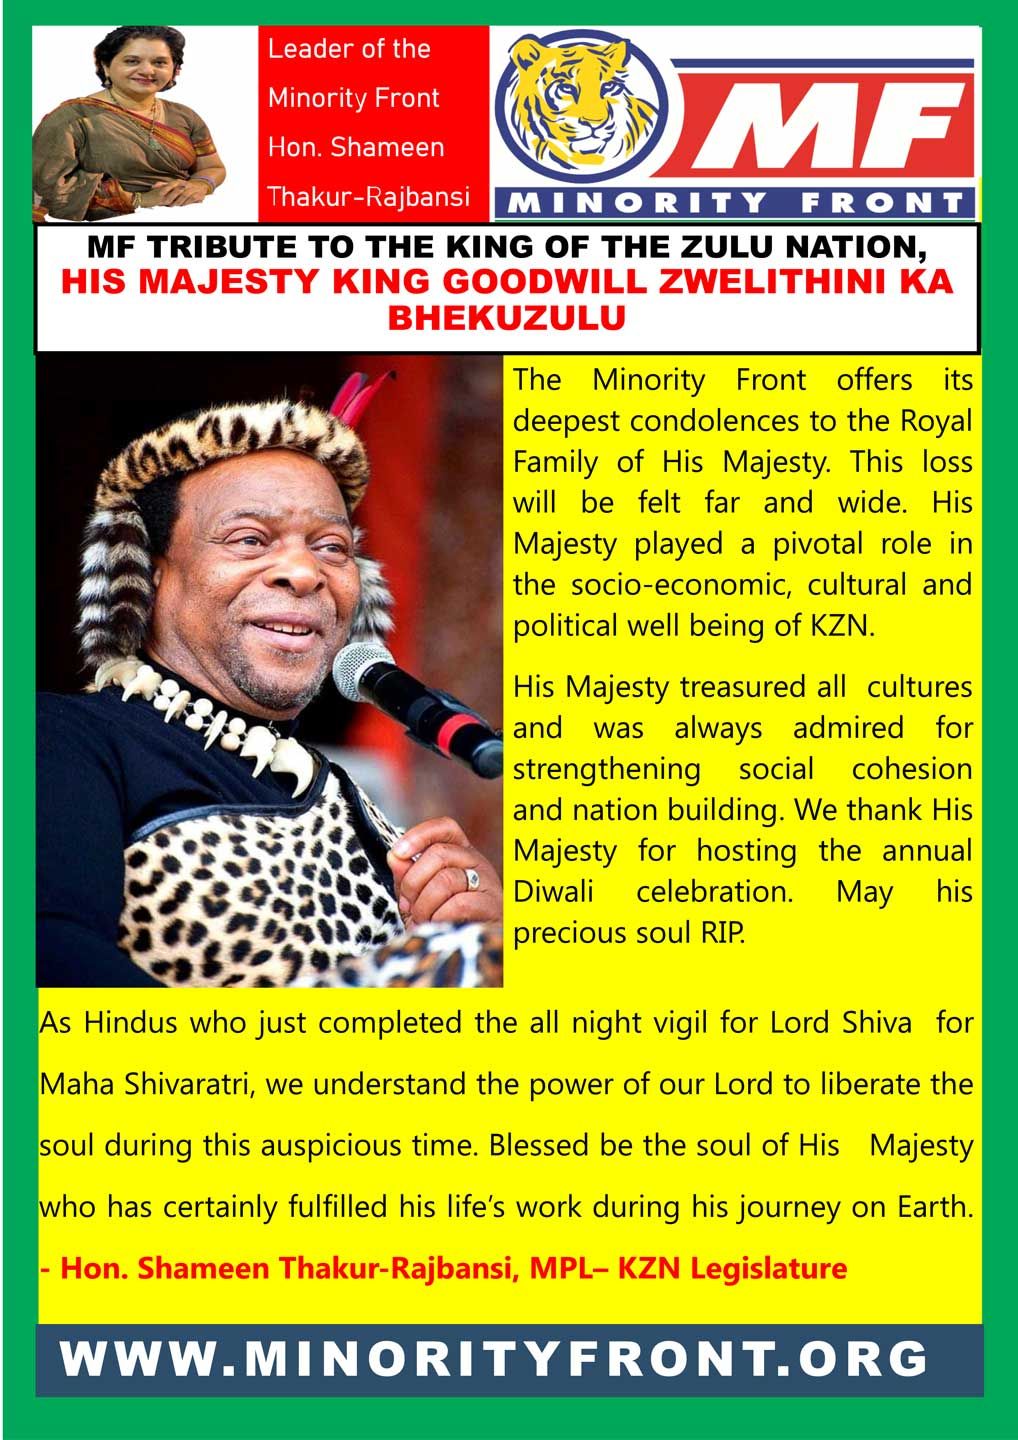 MF Tribute to King Goodwill Zwelithini